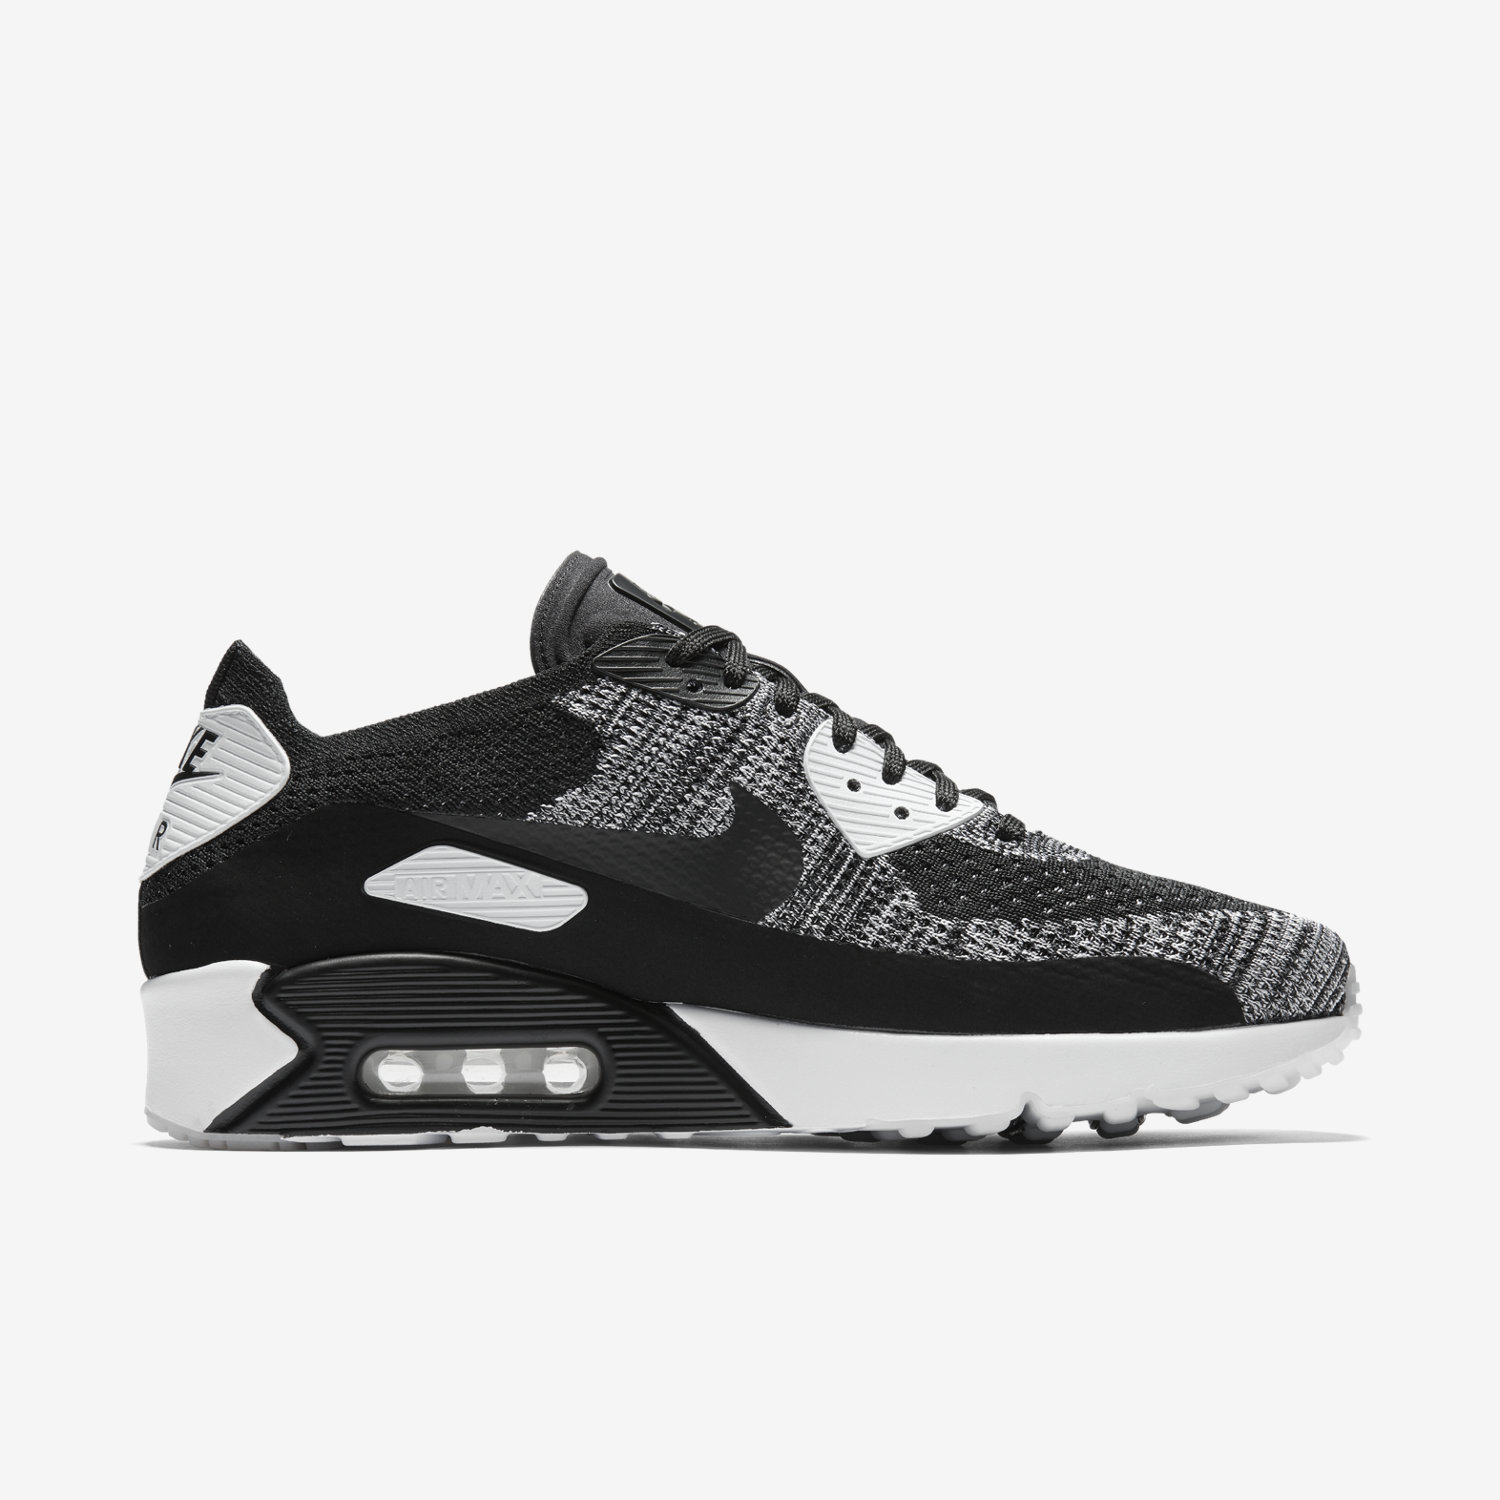 premium selection 642d9 60451 denmark nike sportswear air max 90 ultra 2.0 flyknit trainers sort ...